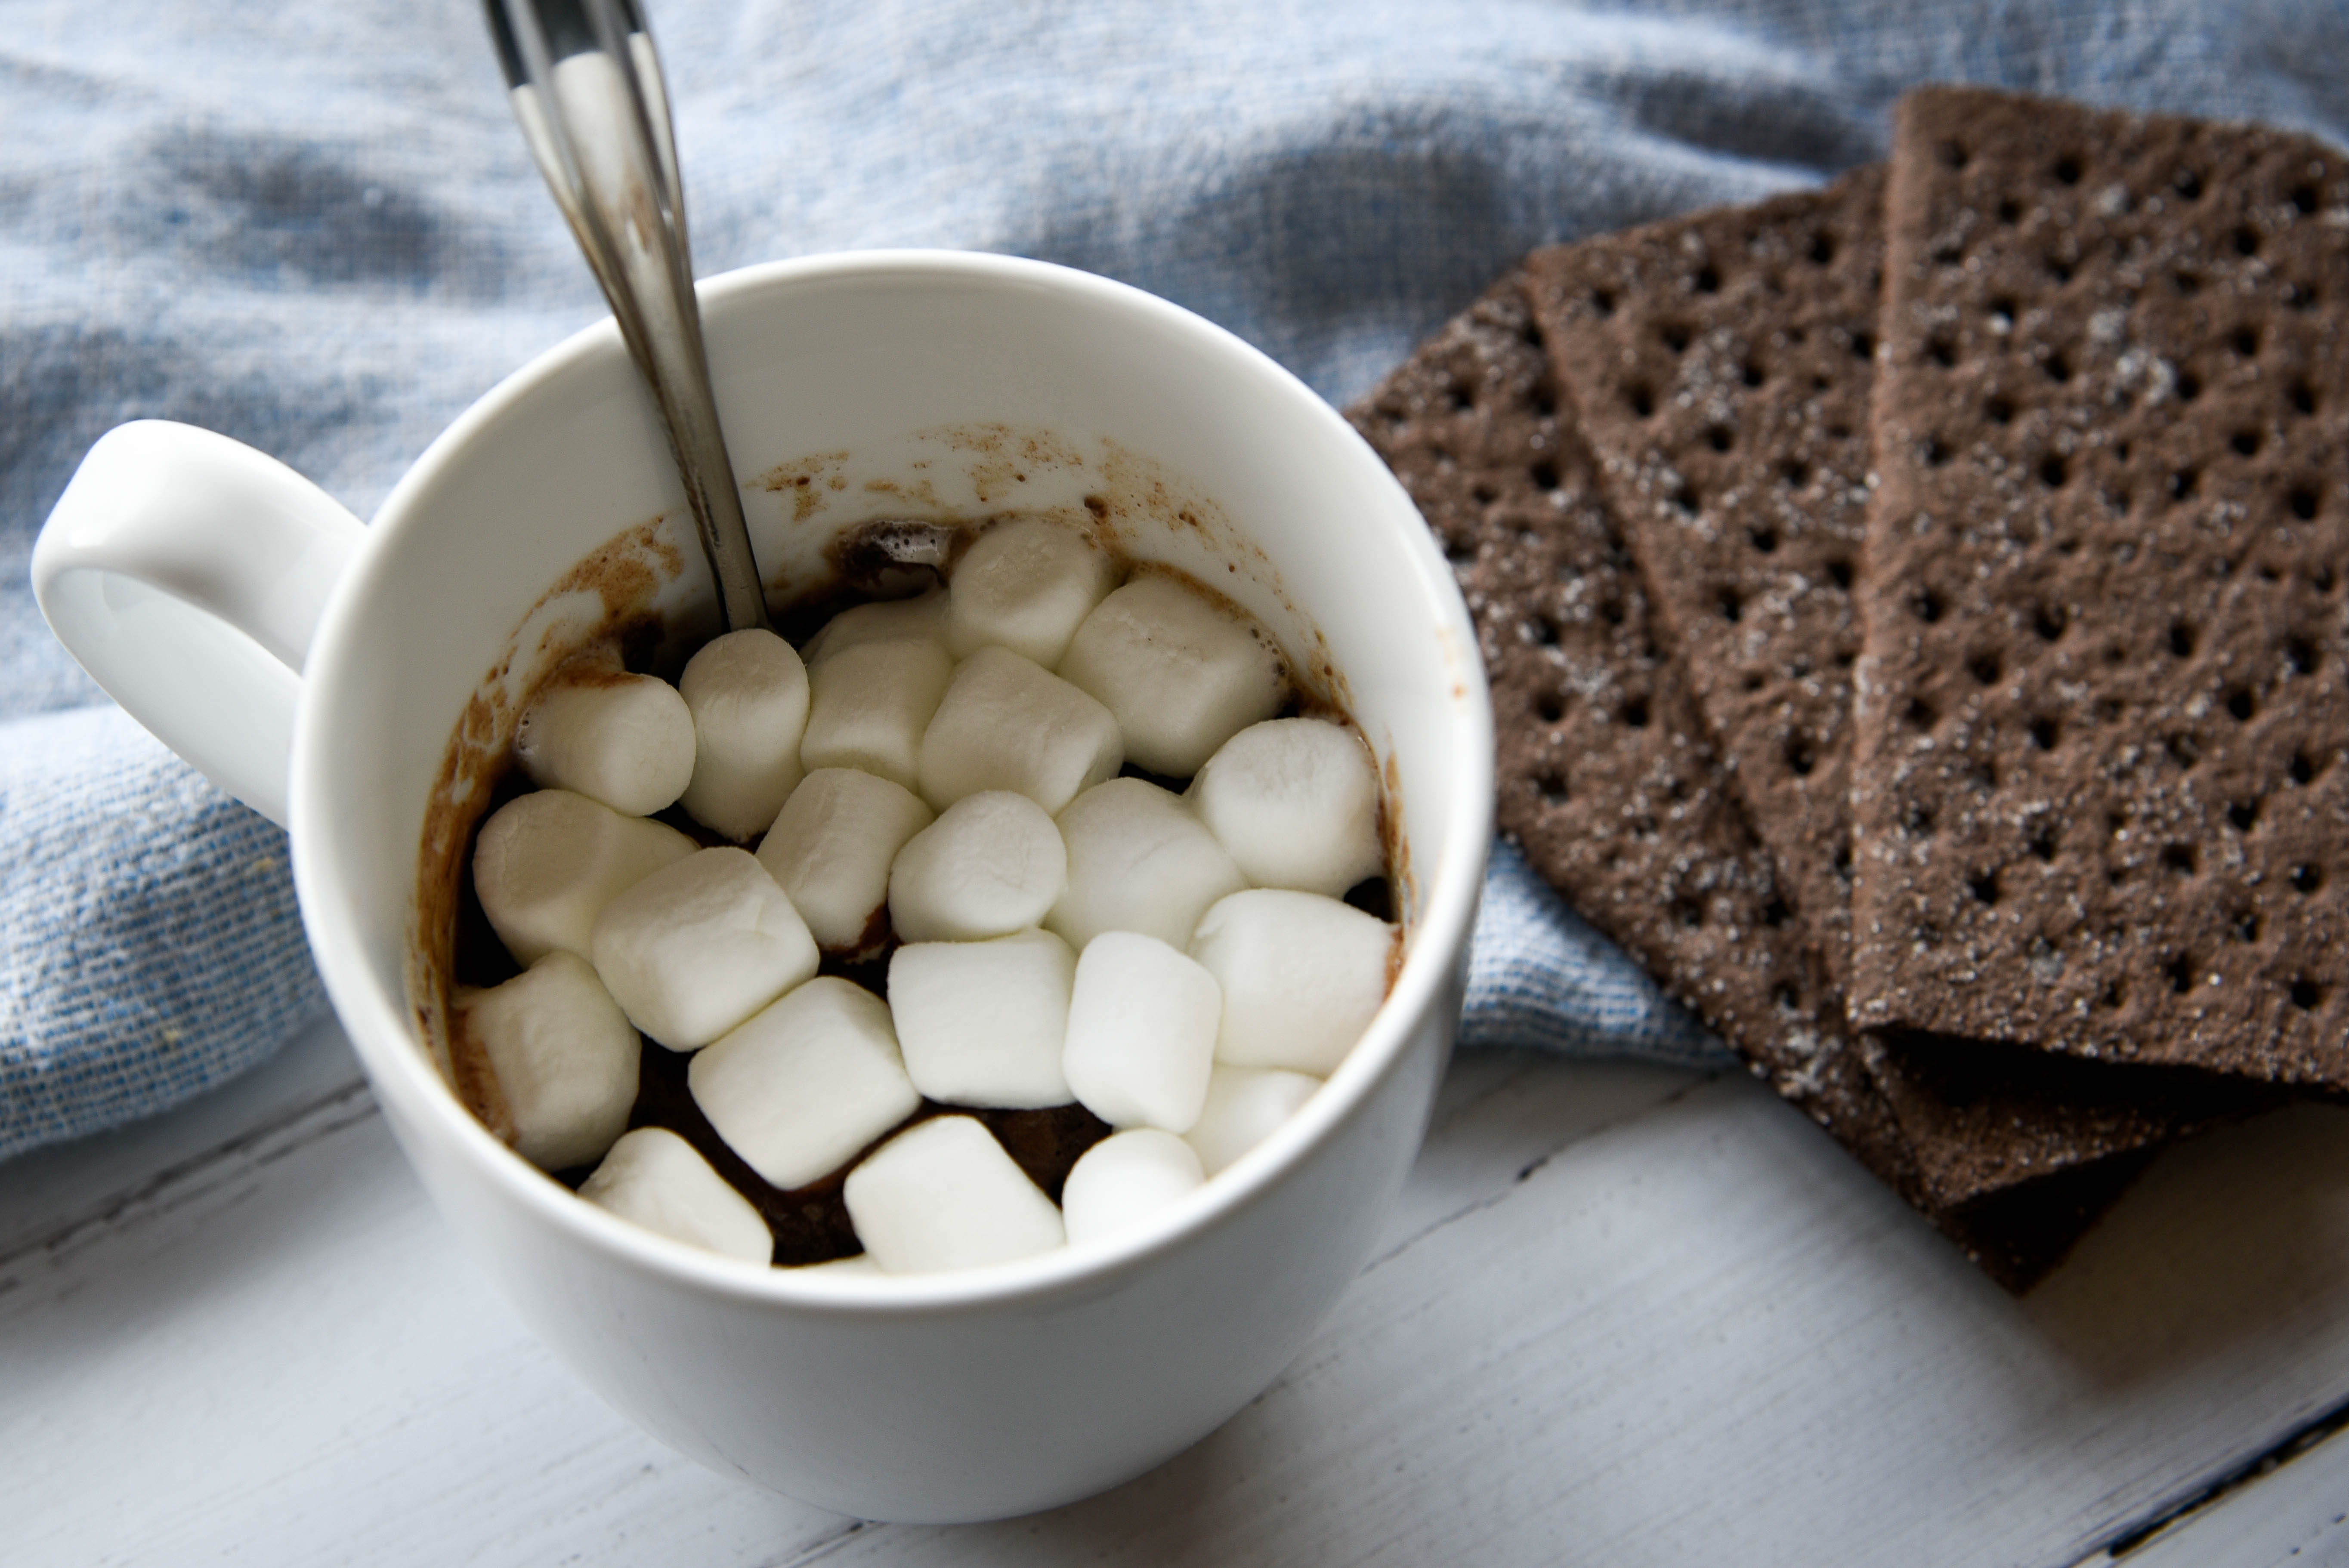 Spoon dipped into a cup of Marshmallows.